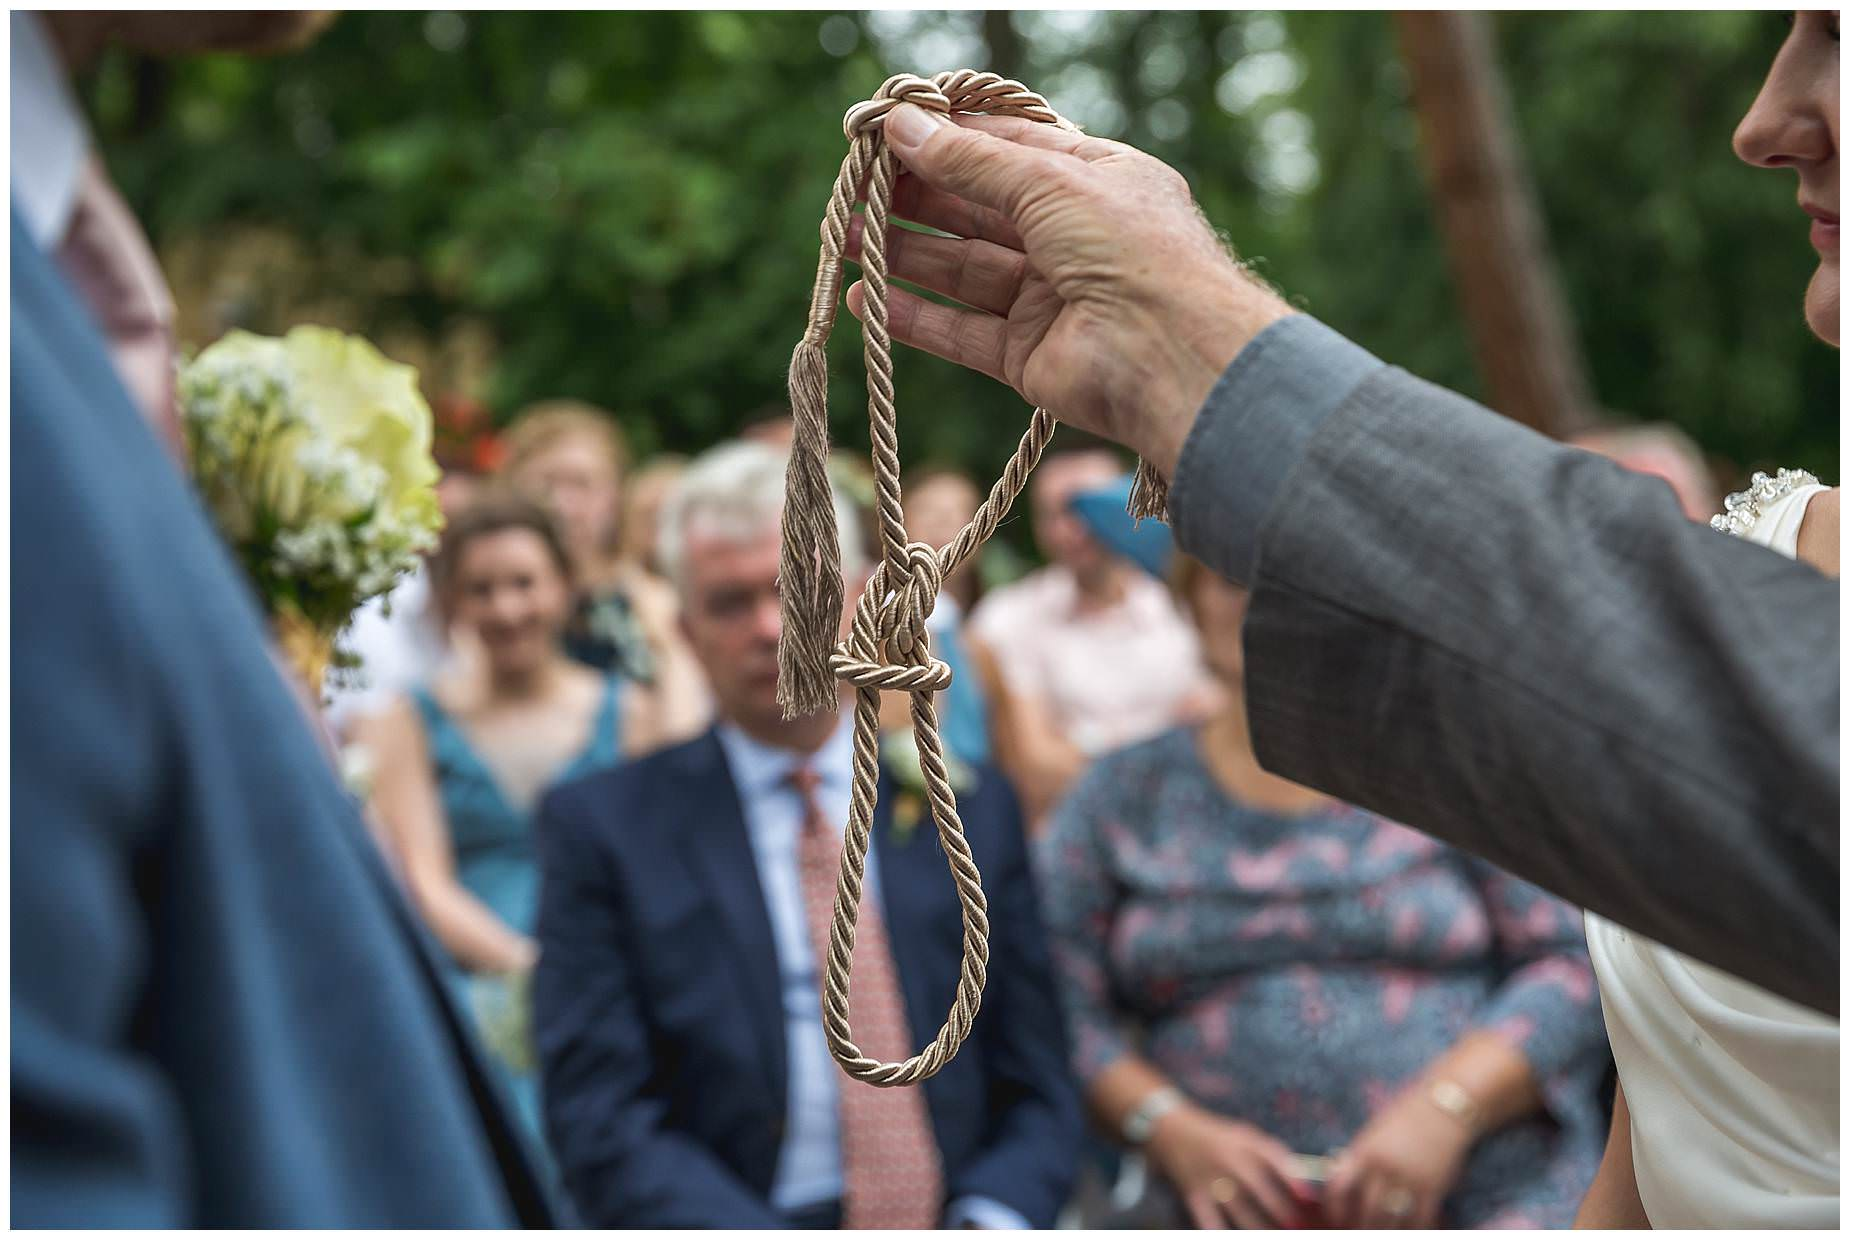 The ceremony rope